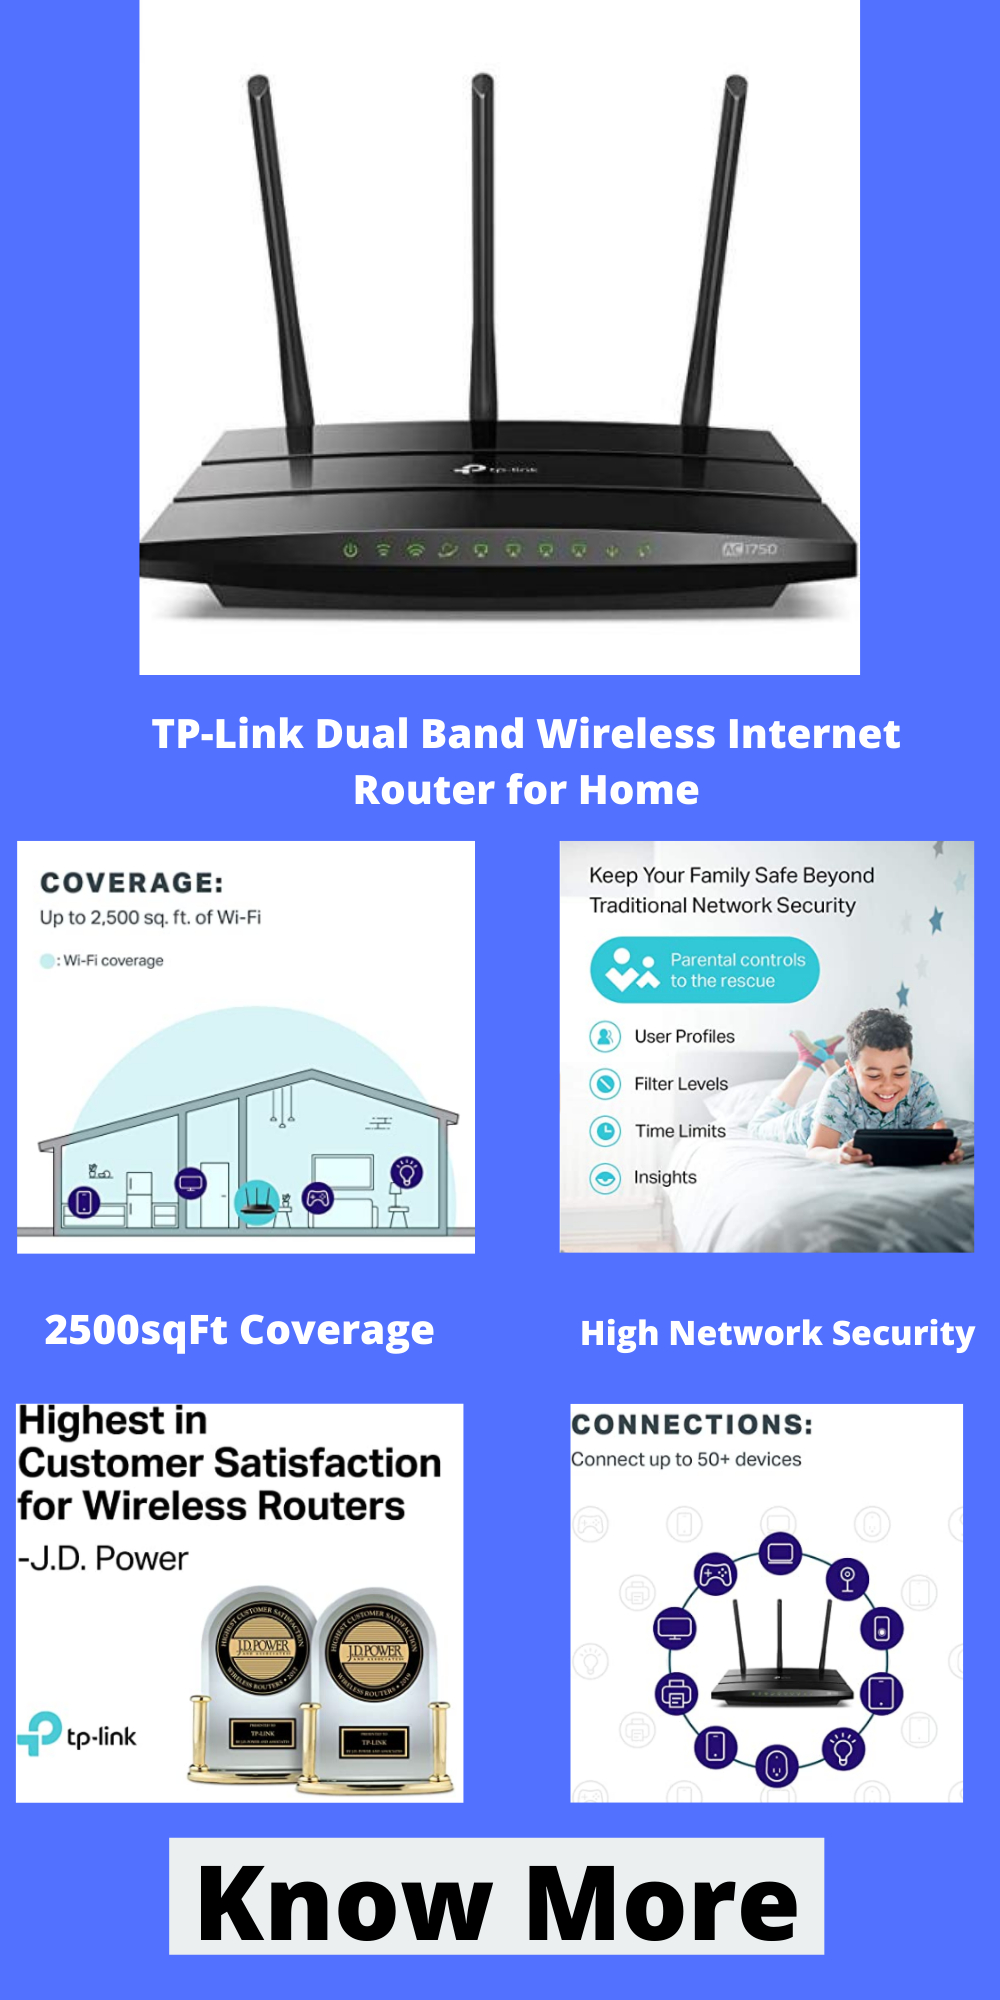 9f4902b187d55c346d66a24f2a4f812b - How To Configure Vpn Function On Tp Link Routers